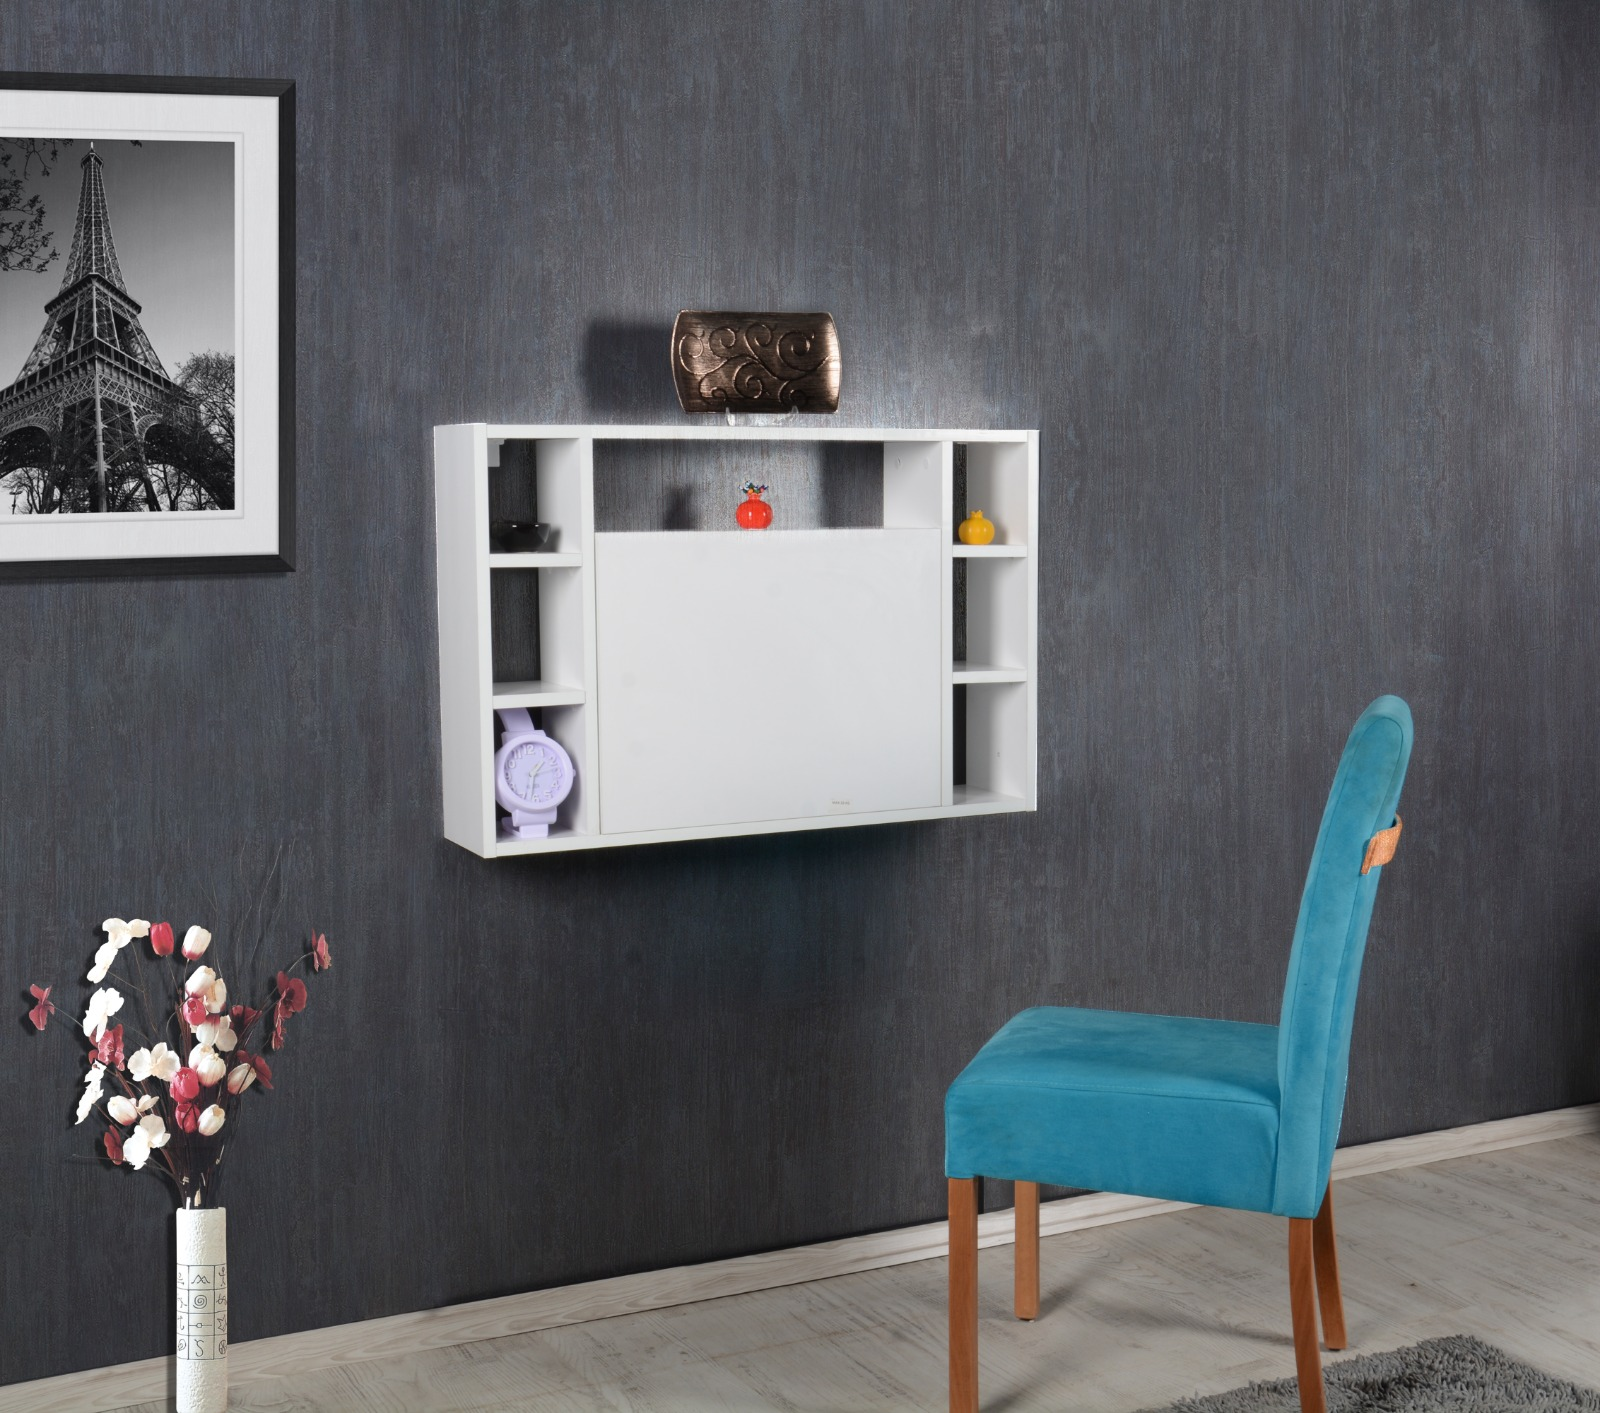 70090311-Wall-unit-with-foldable-desk-table